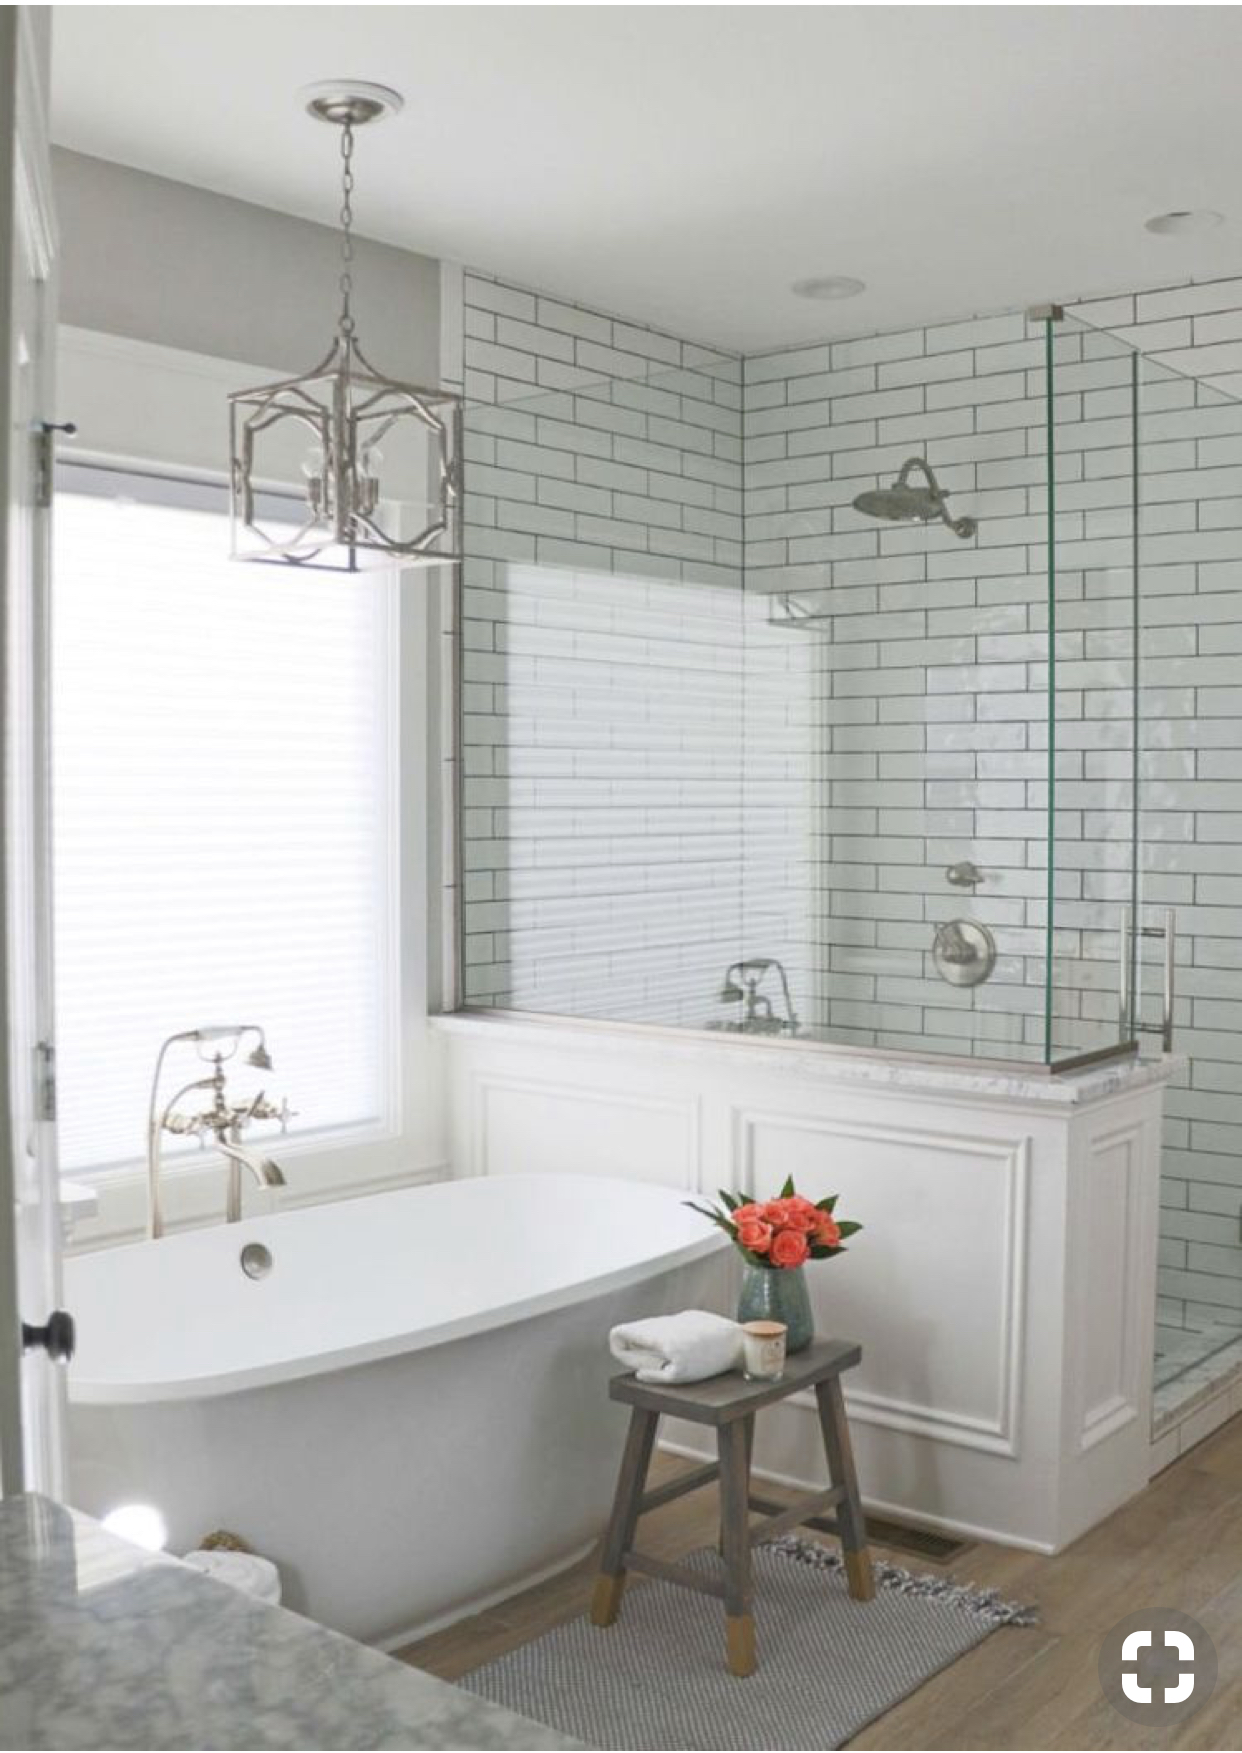 *Masterbath Inspiration: we will add a tub and I love the molding around the shower base here.